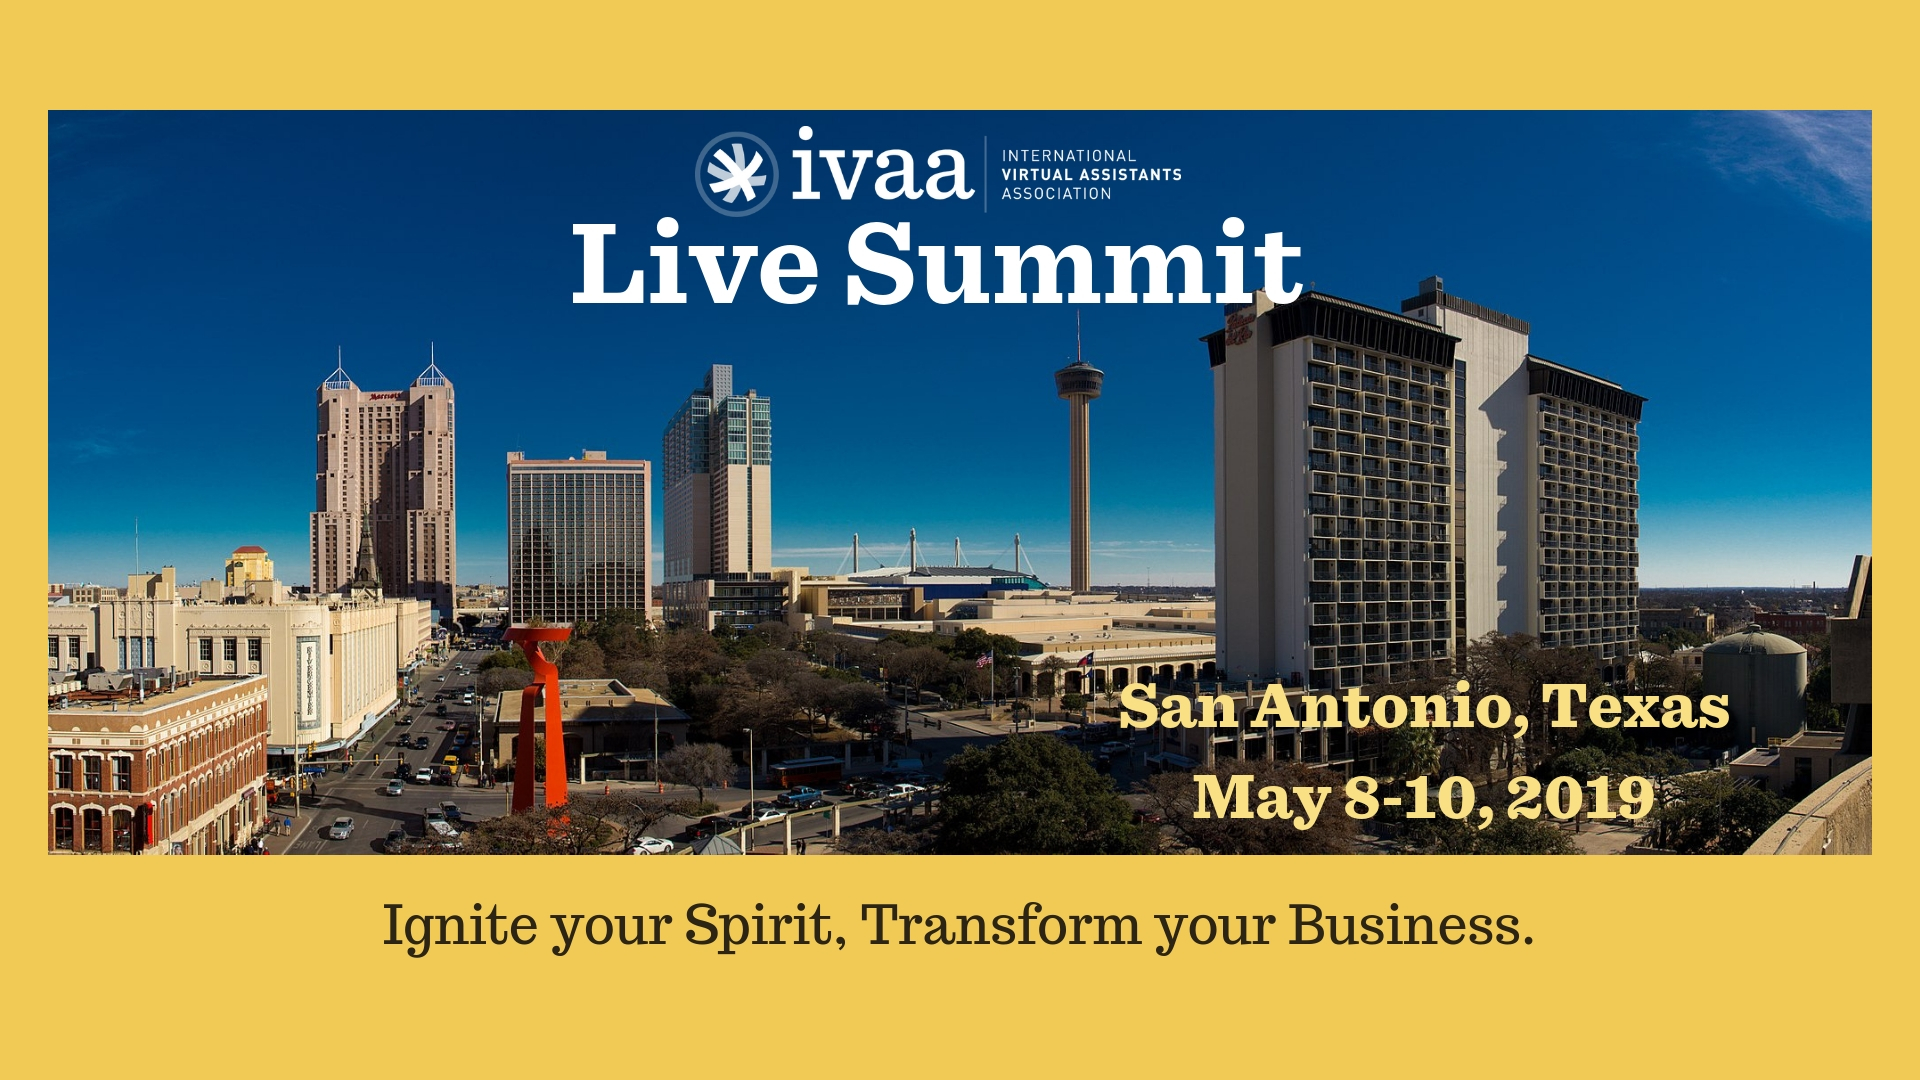 Websites are on the Agenda for the IVAA Live Summit